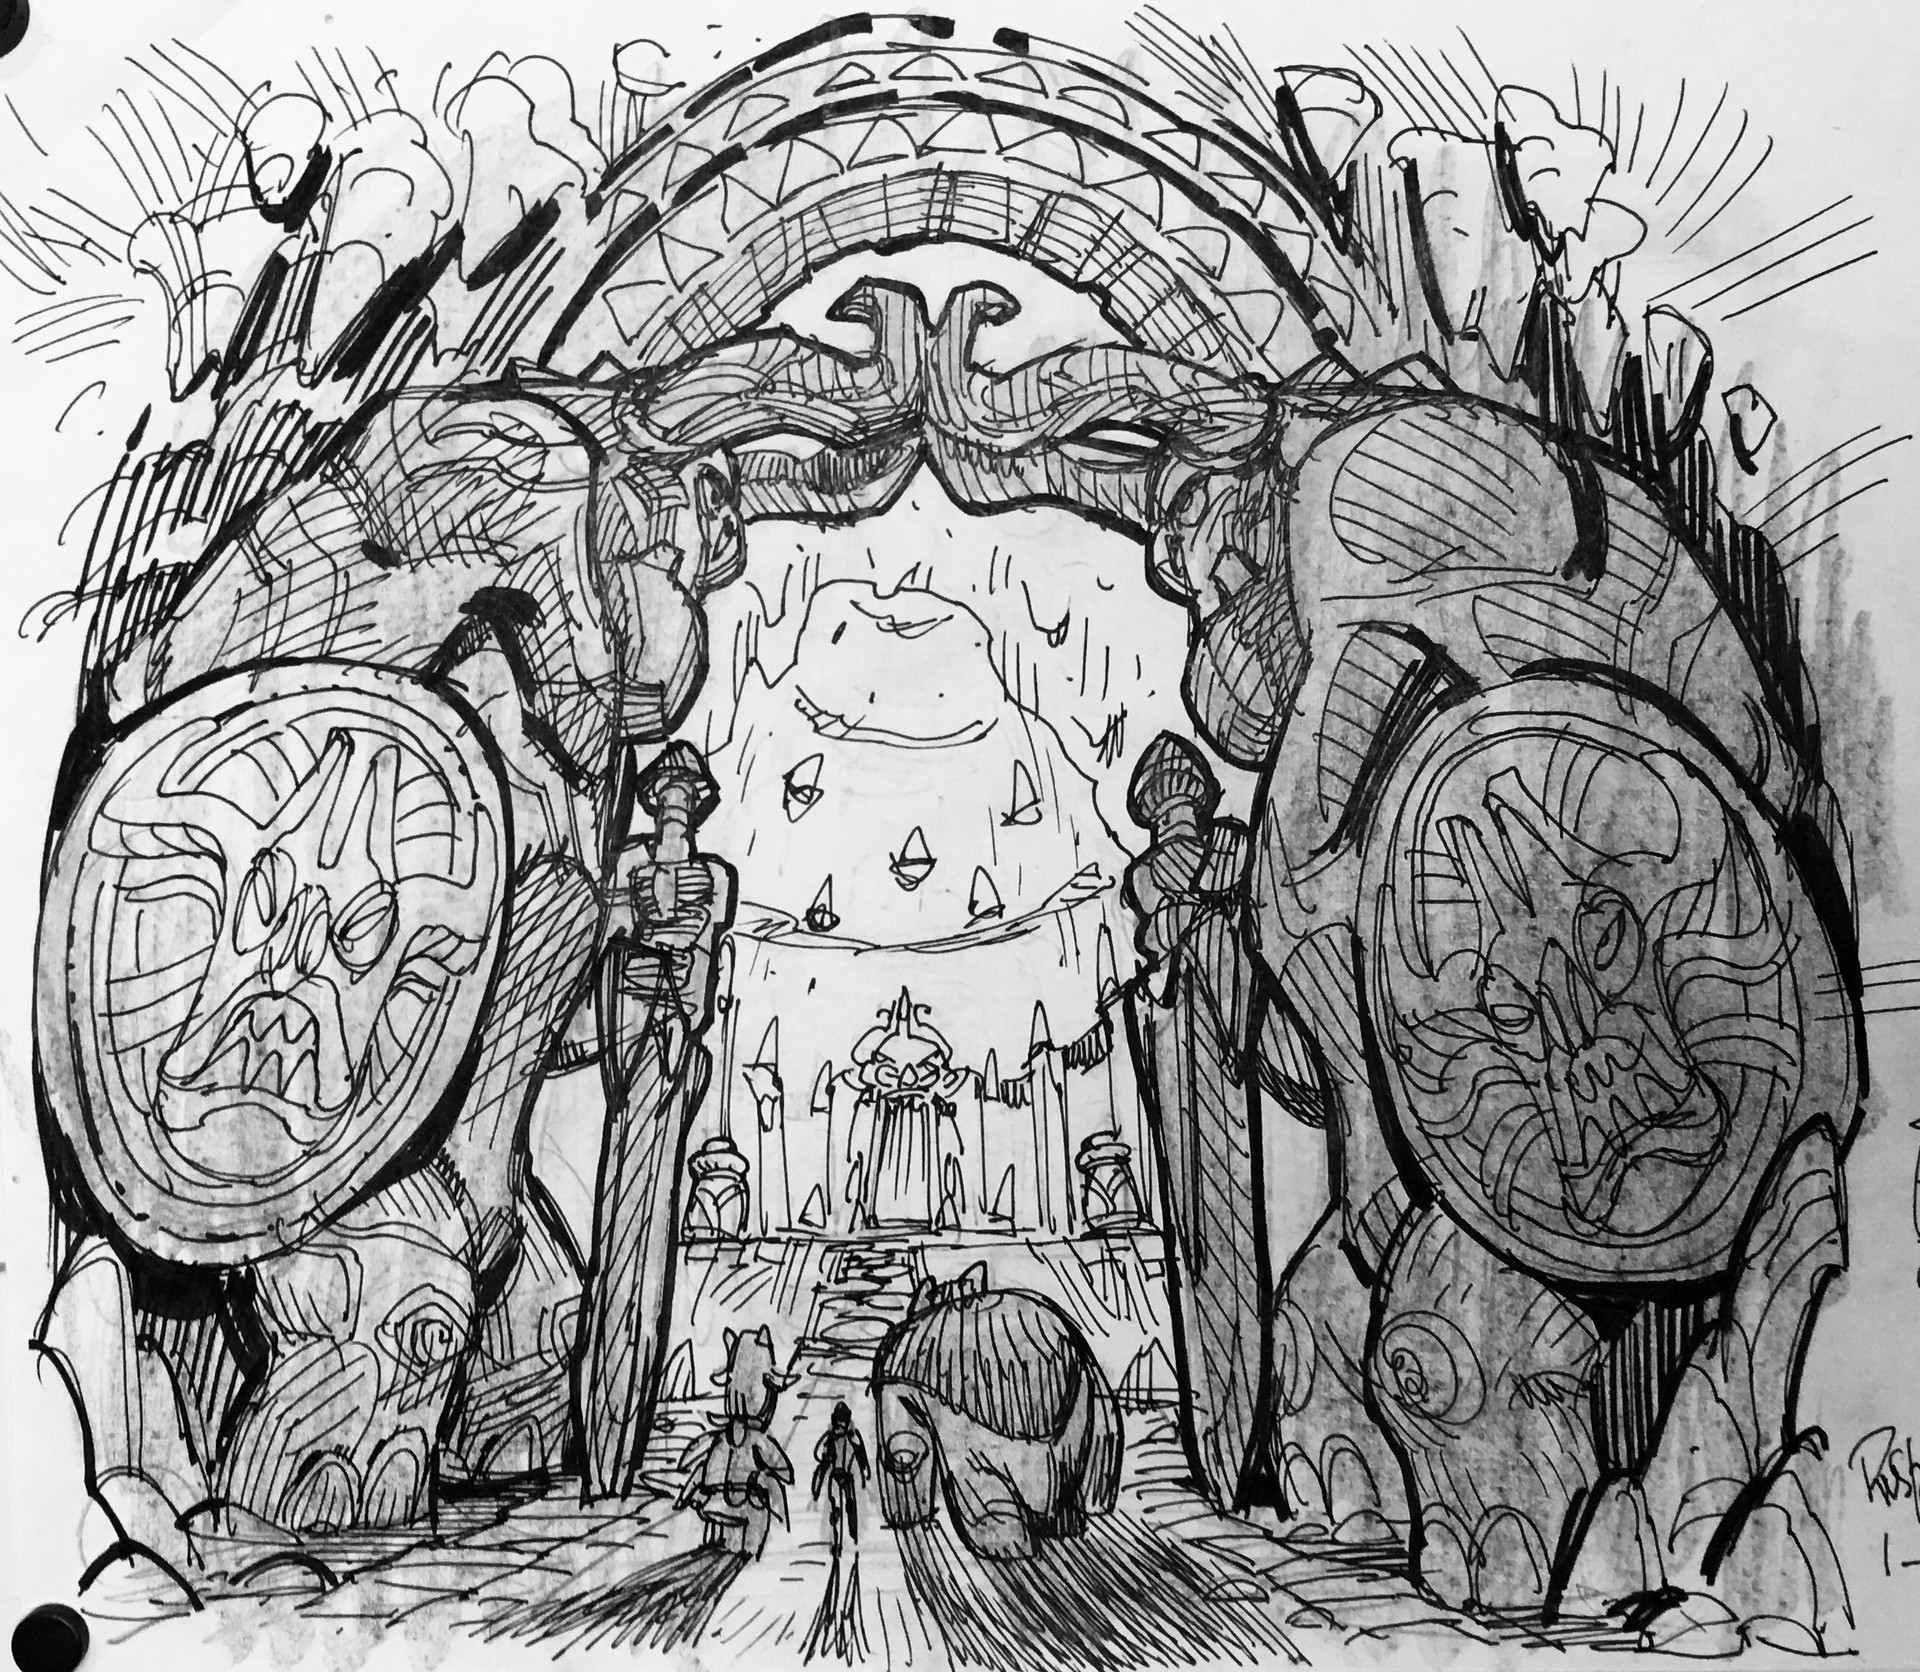 Trollhunters production sketches, Hero's Forge